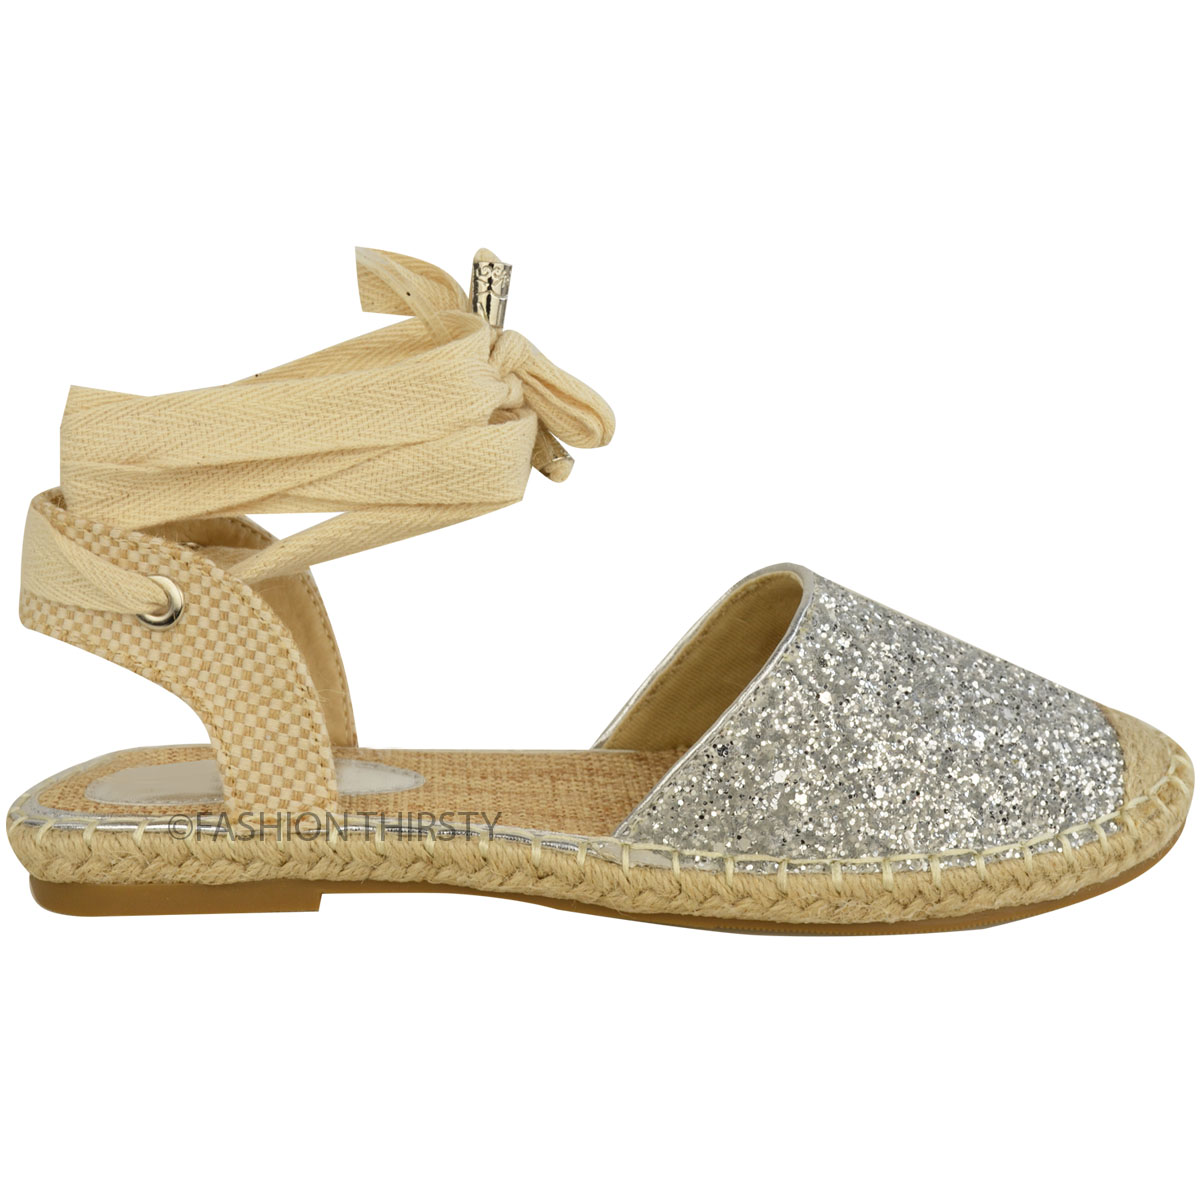 Womens Ladies Glitter Espadrilles Flat Low Heel Sandals